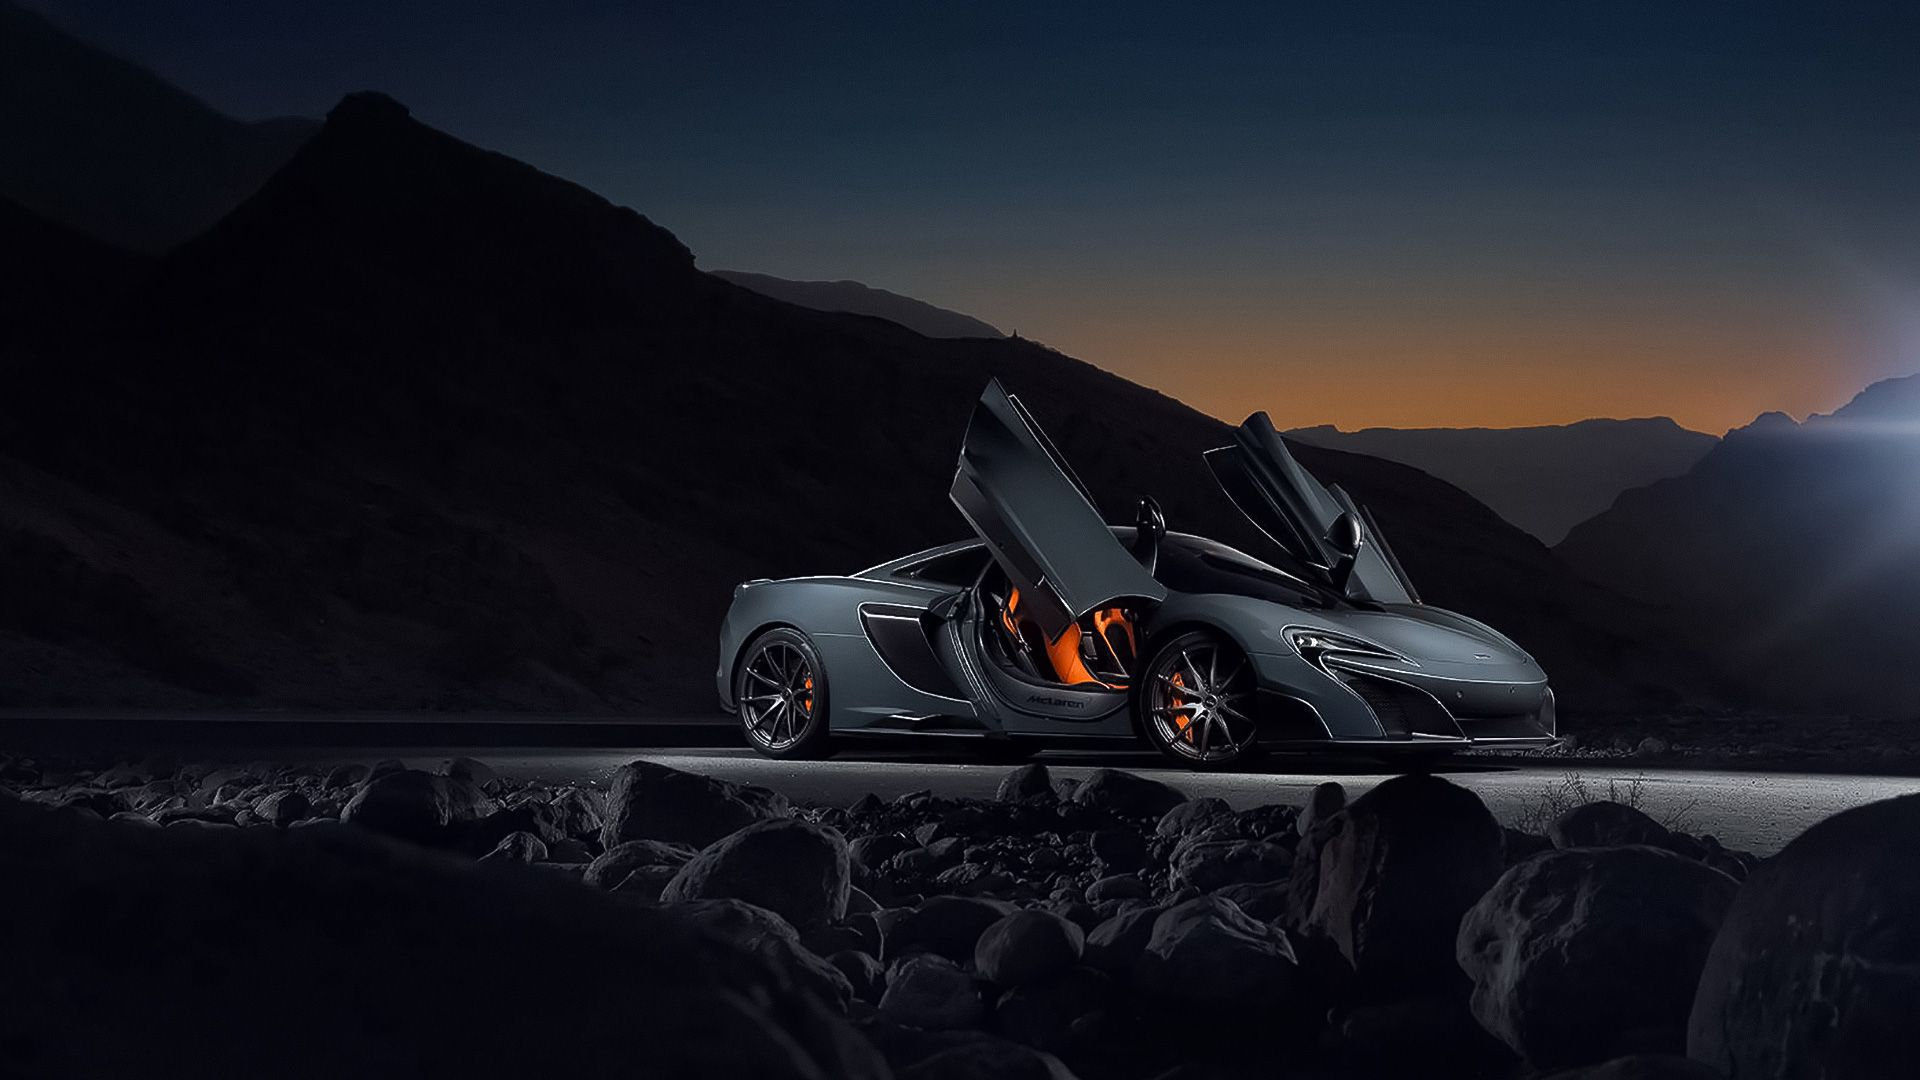 Supercar Wallpapers Hd Resolution Automobile Wallpaper 1080p